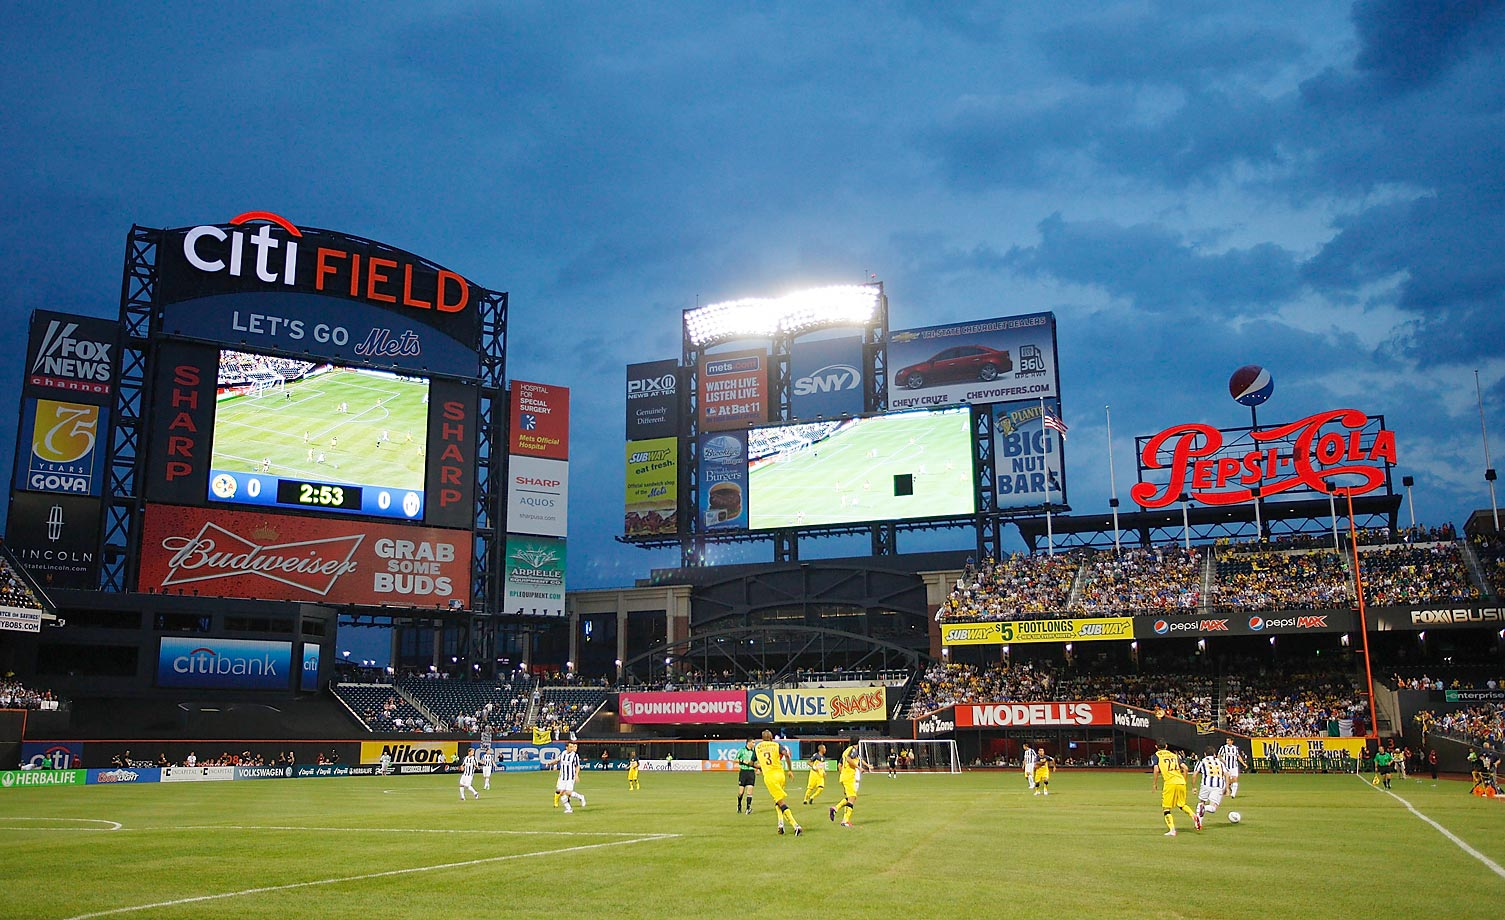 Juventus FC played Club America at Citi Field on July 26, 2011.